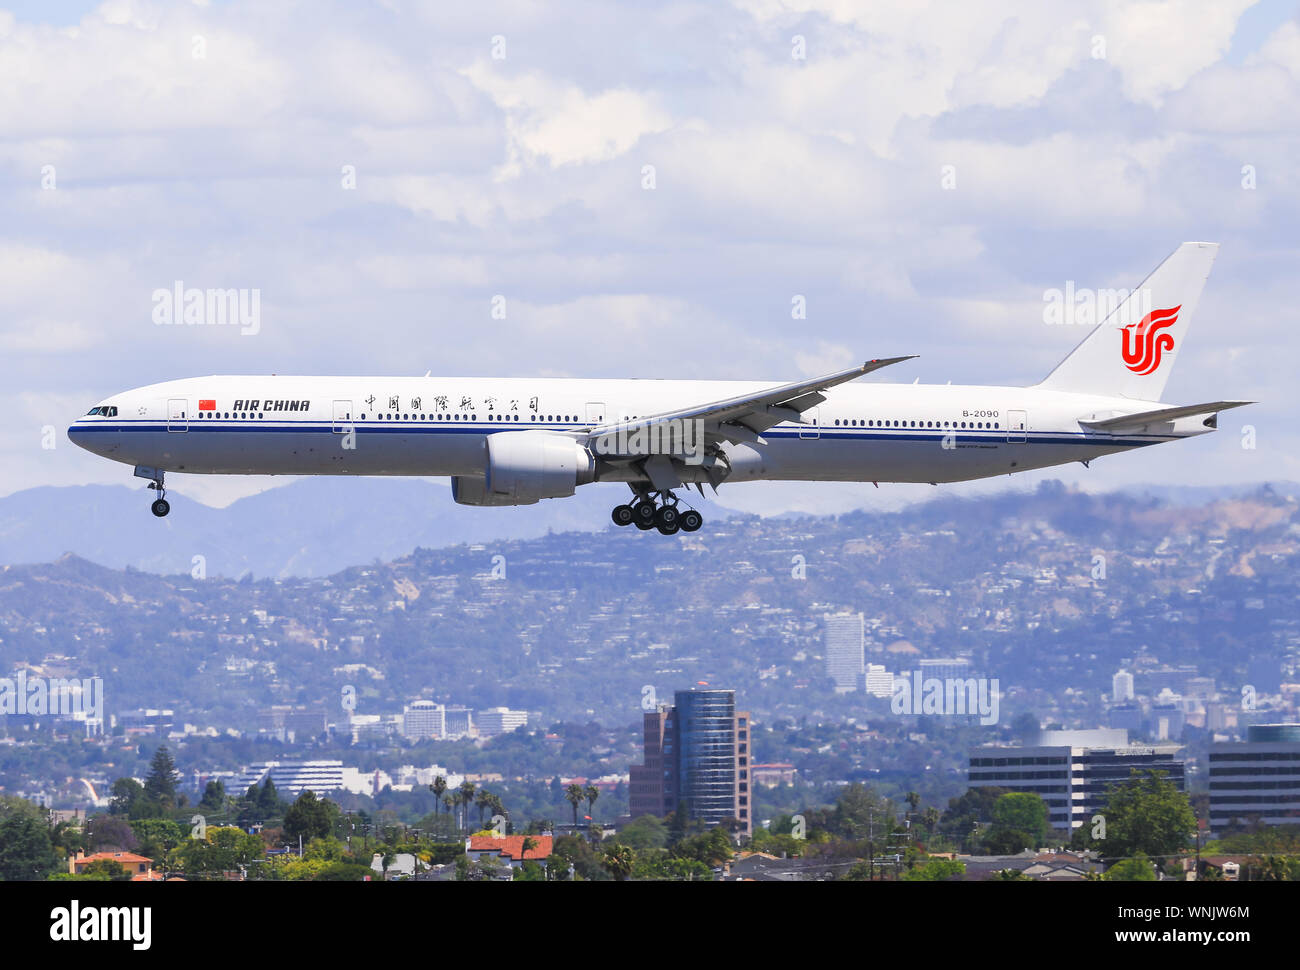 Los Angeles, California, USA - May 22, 2019: An Air China Boeing 777 lands at the Los Angeles International Airport (LAX). In the background you can s Stock Photo